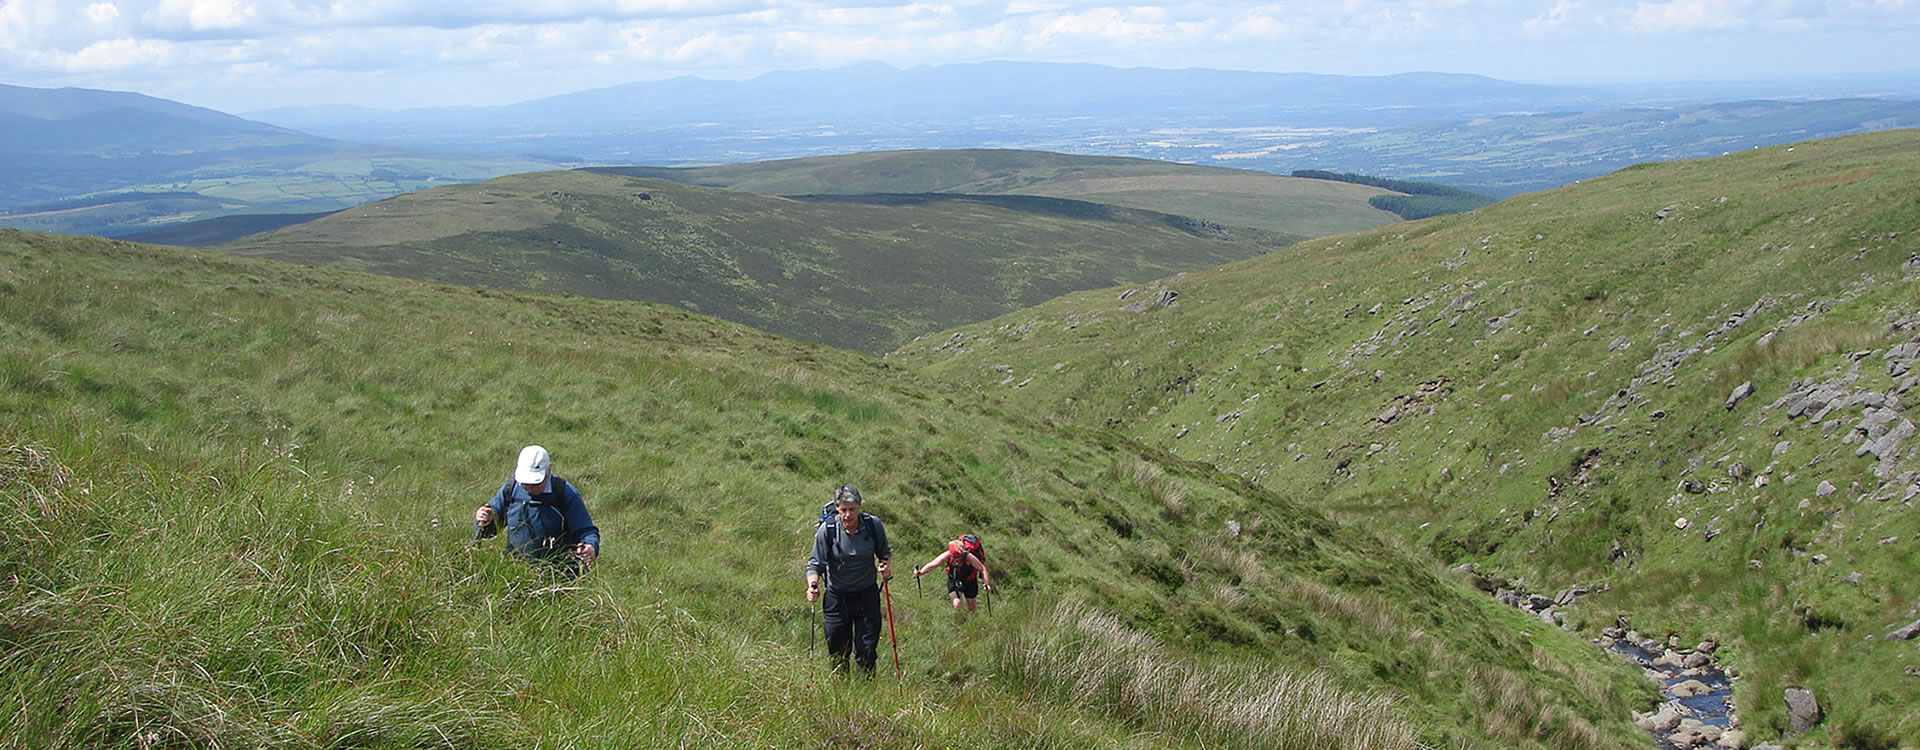 Guided Walking Tour Ireland